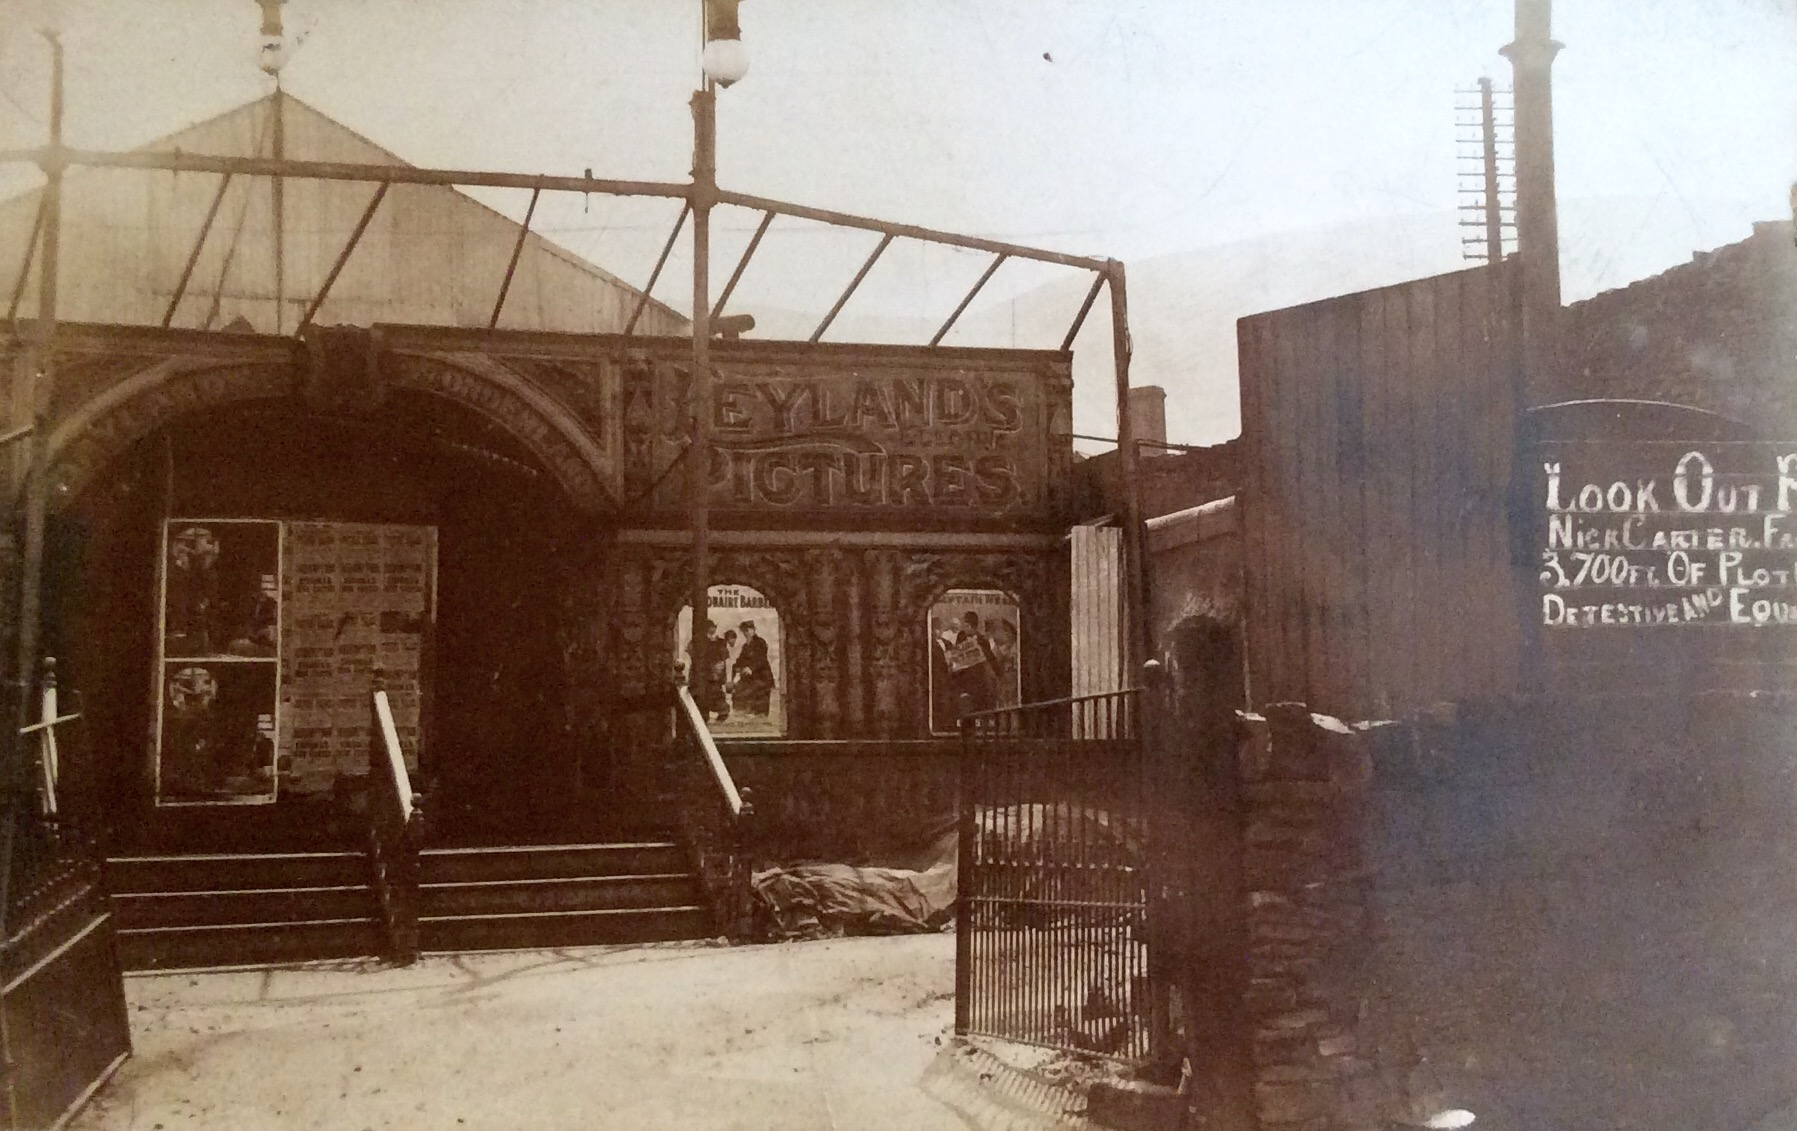 Leyland's Pictures - the early Electric Theatre in Marsden